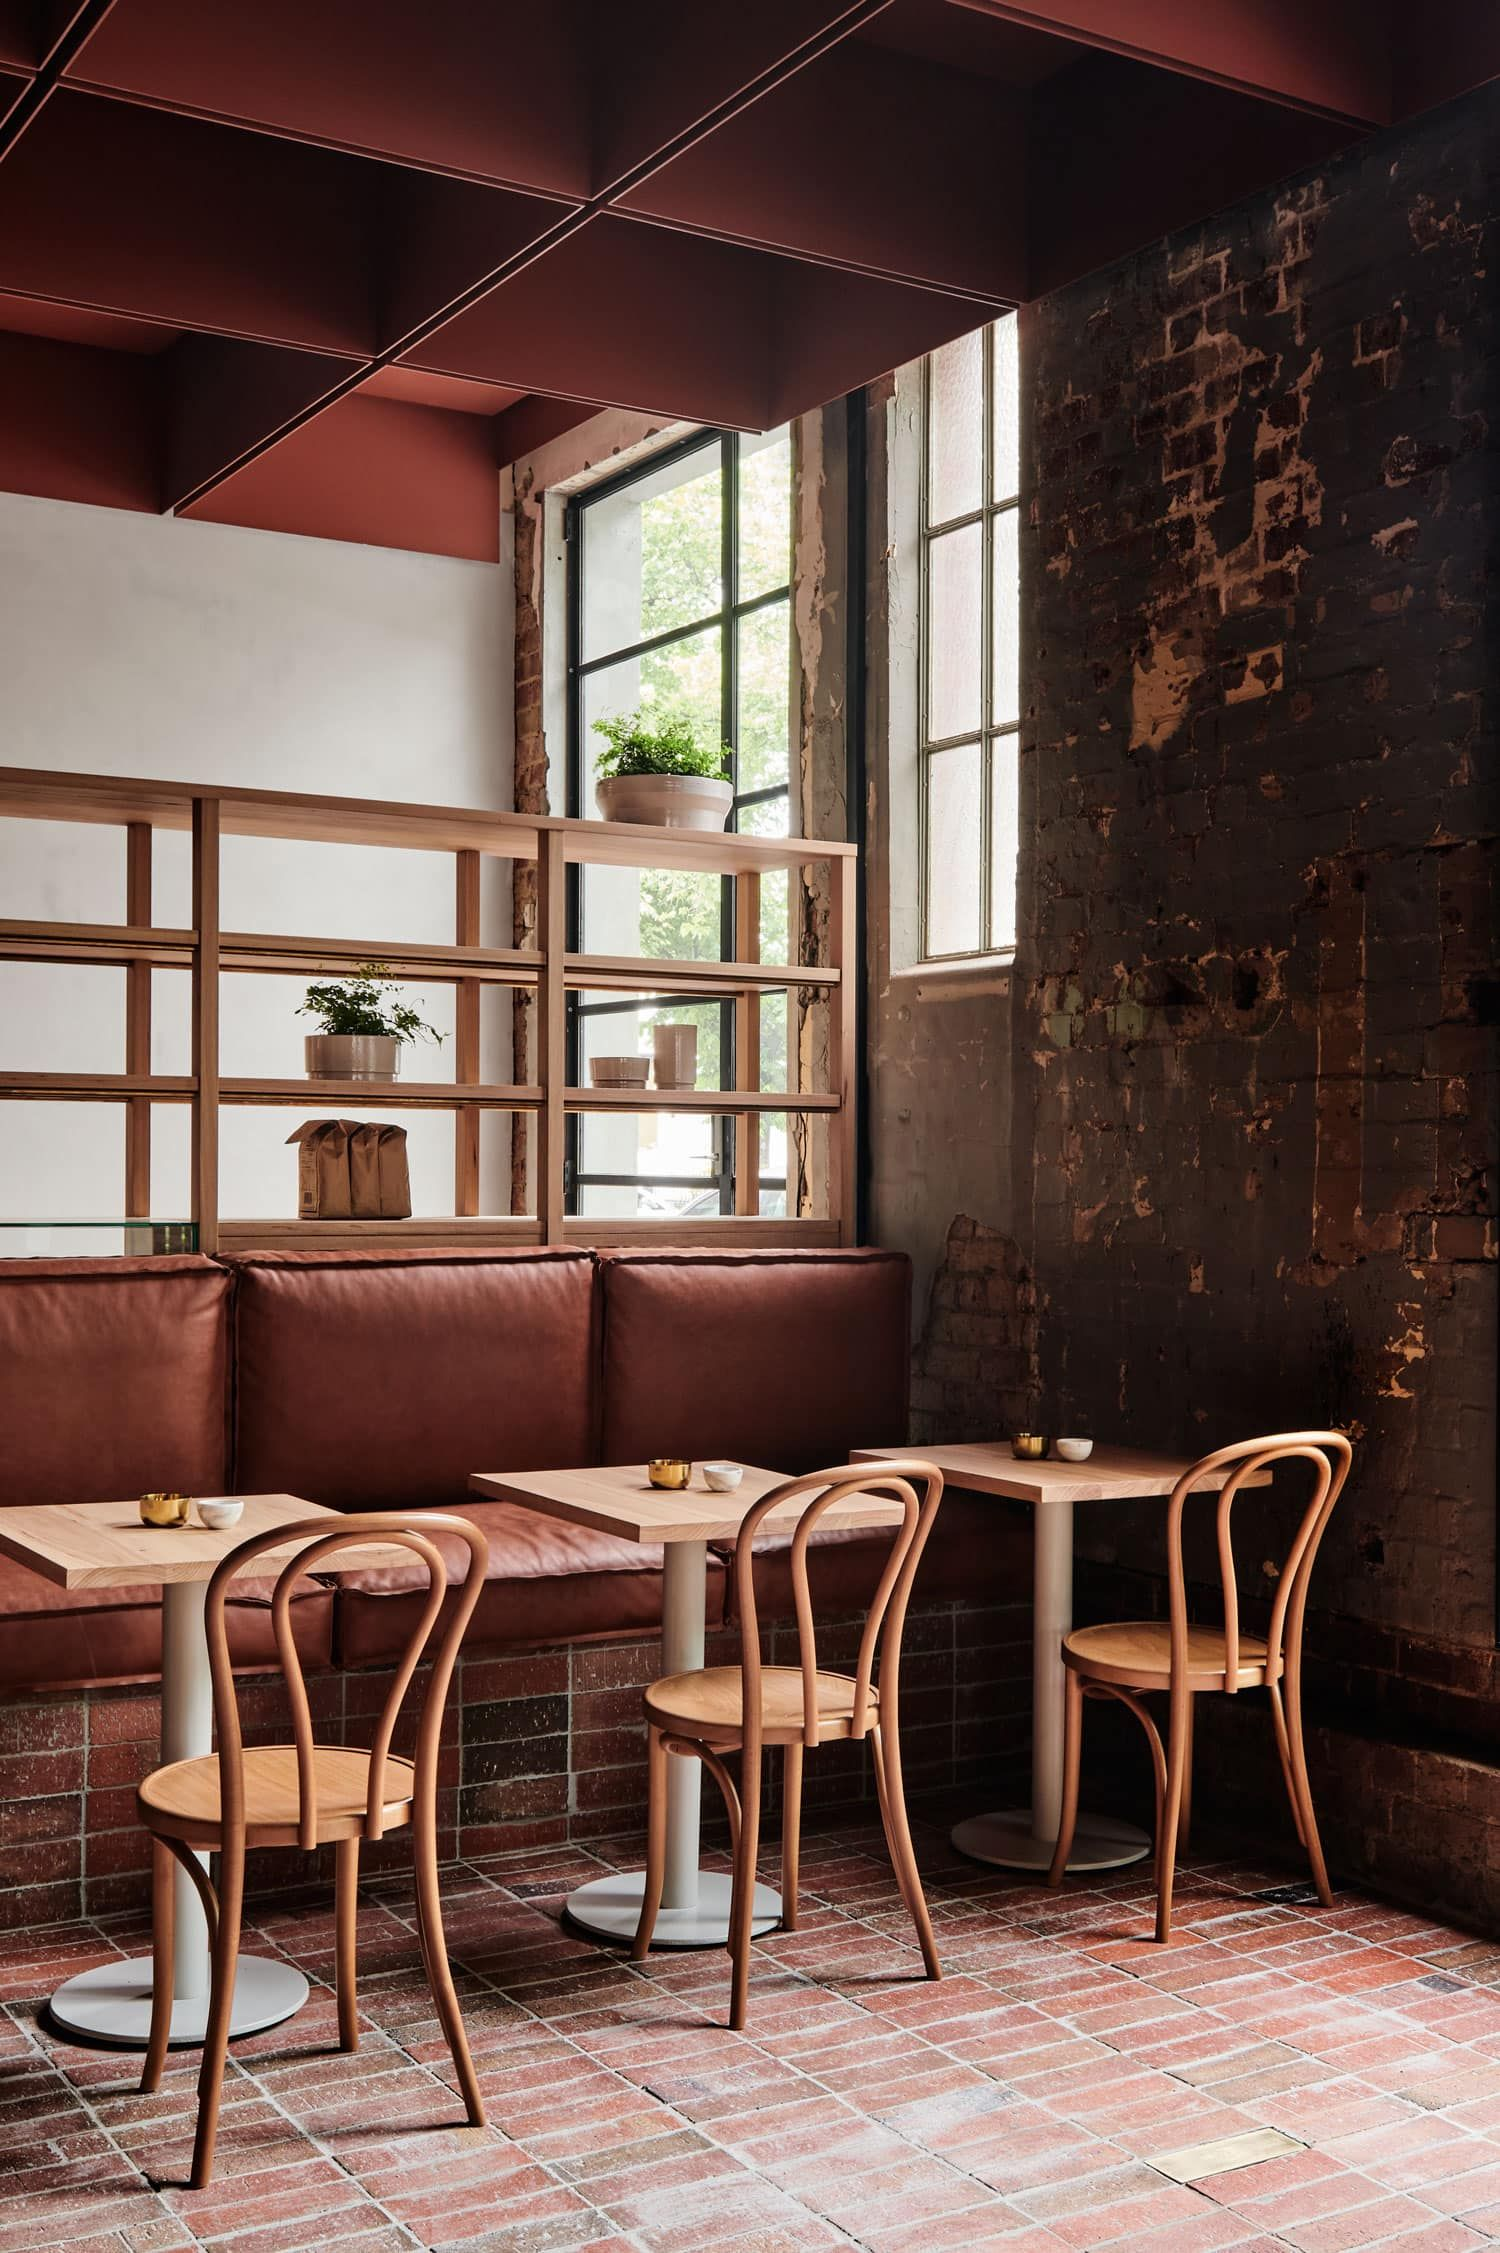 Cafe Möbel Bentwood Cafe In Fitzroy Melbourne By Ritz Ghougassian Design